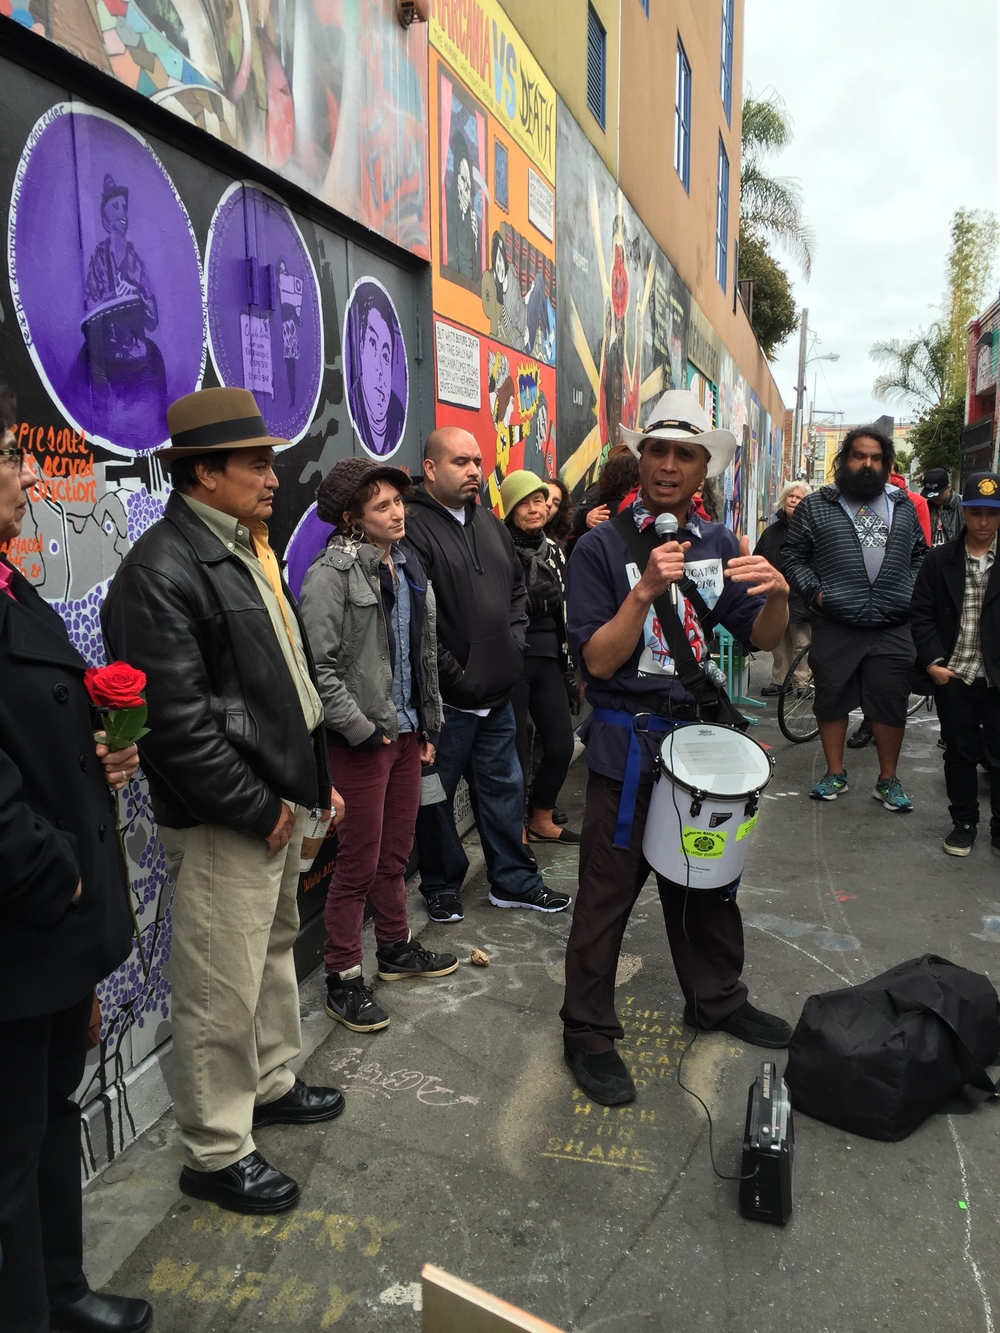 Benito Santiago leading us in protest beats at dedication ceremony